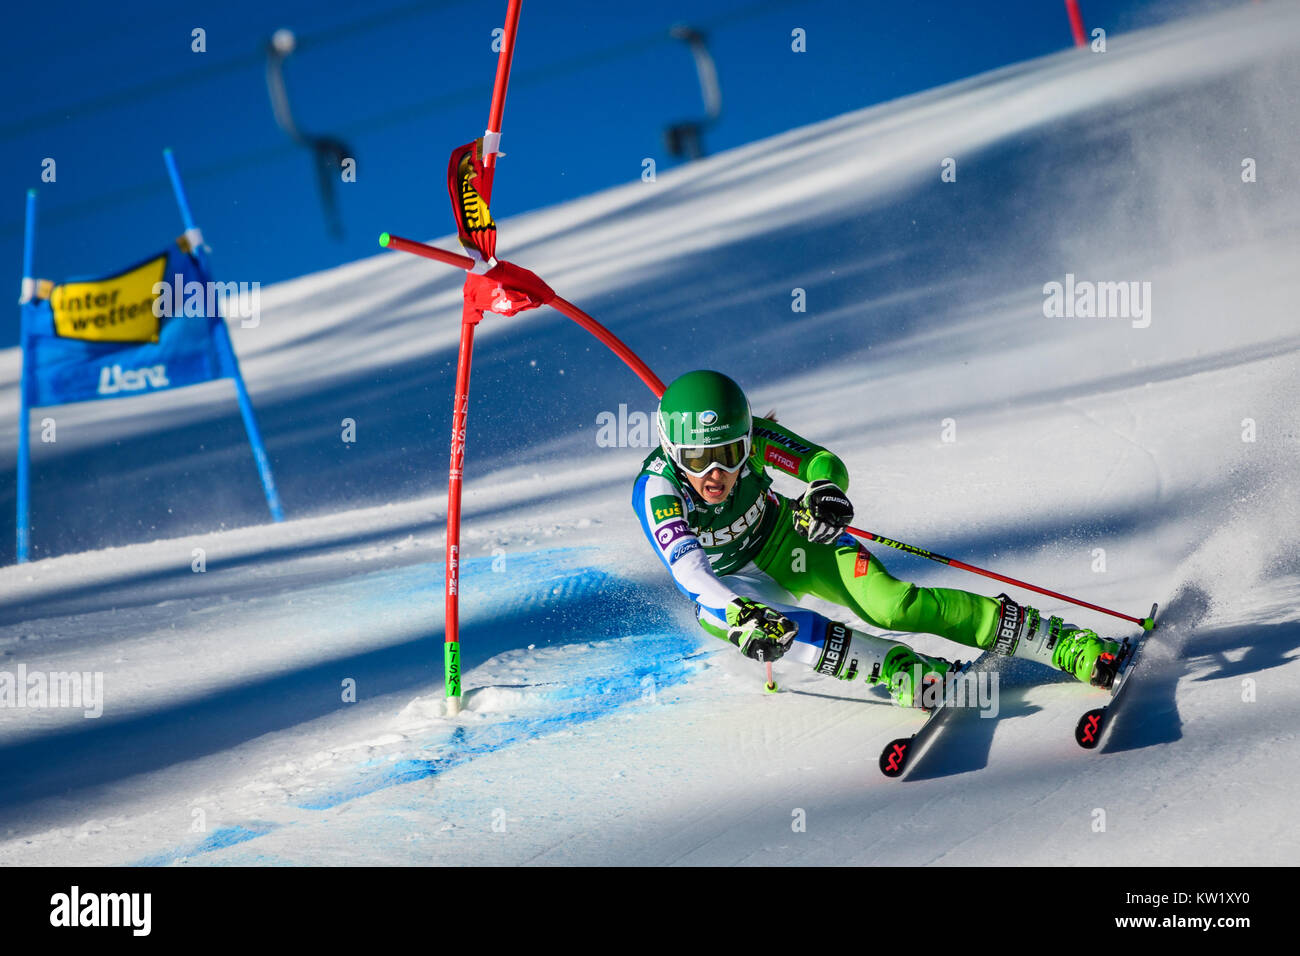 Lienz, Austria. 29th Dec, 2017. Tina Robnik of Slovenia competes during the FIS World Cup Ladies Giant Slalom race - Stock Image